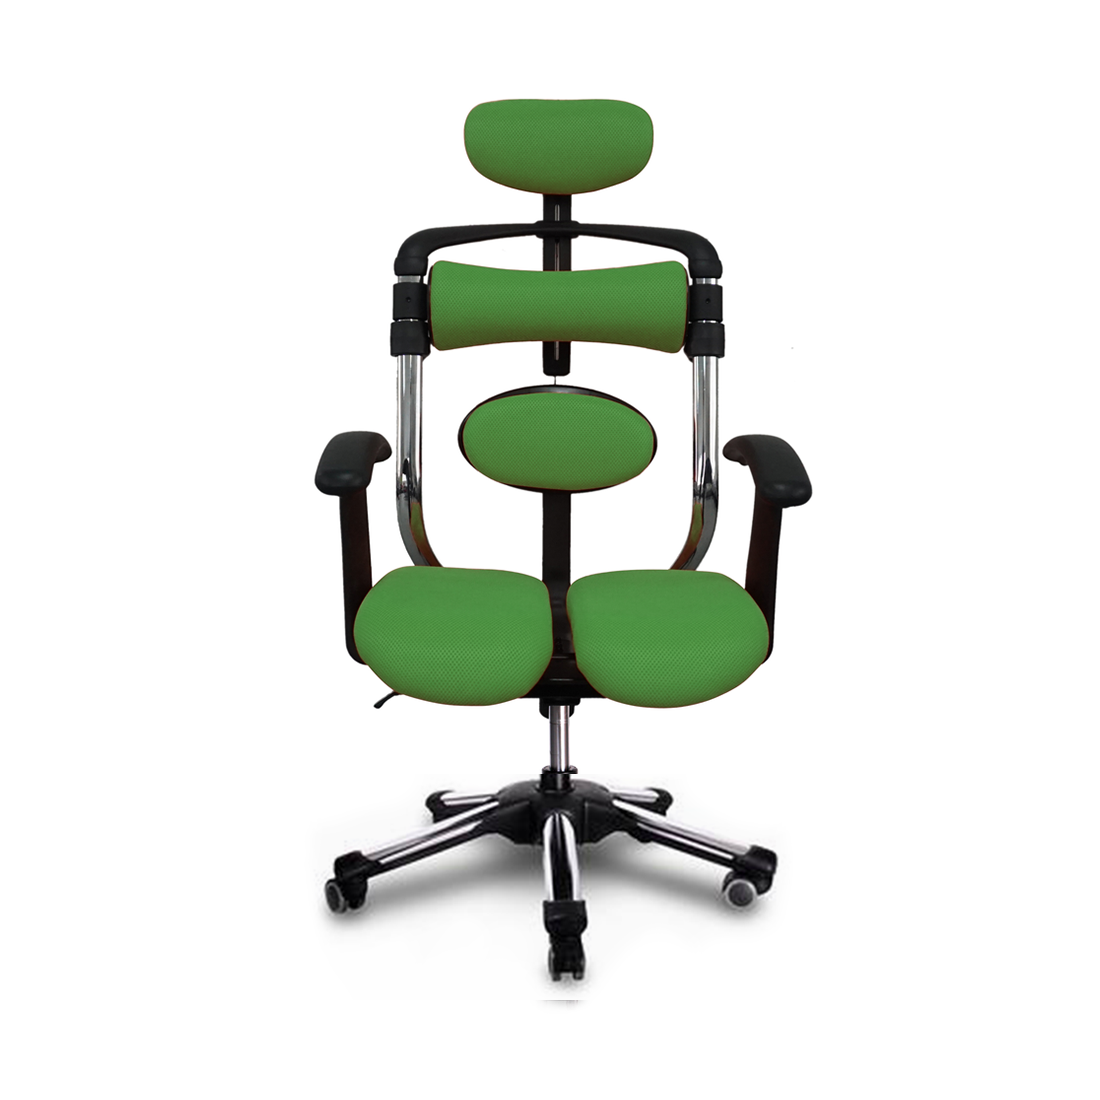 HARA-P with Roller Back and Lumbar Support